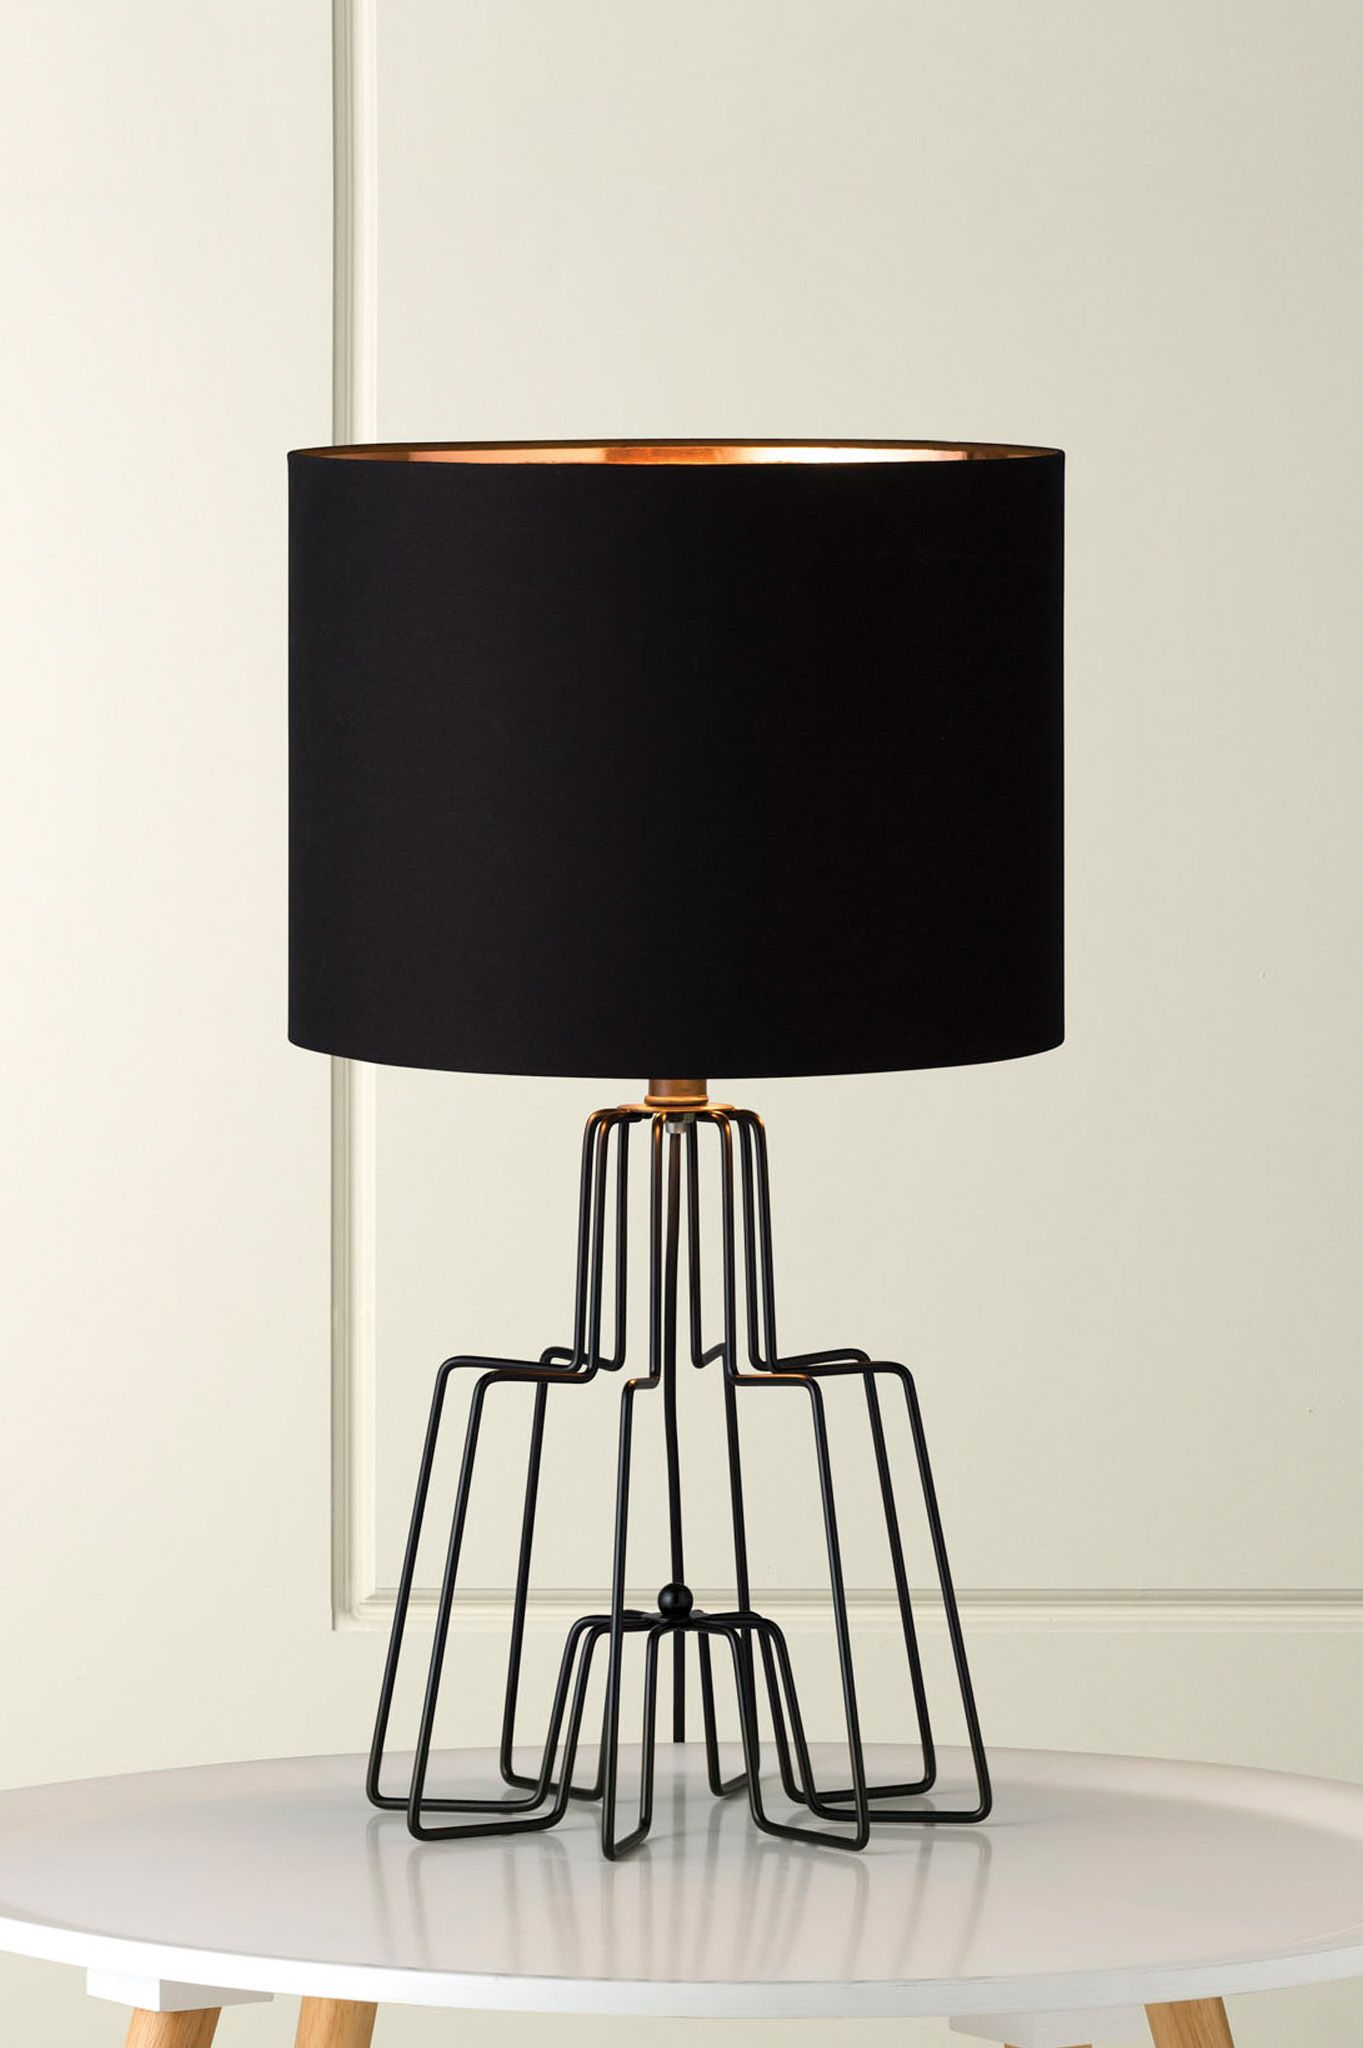 1130 Kink Black Wire Table Lamp With Black Shade And Copper Foil